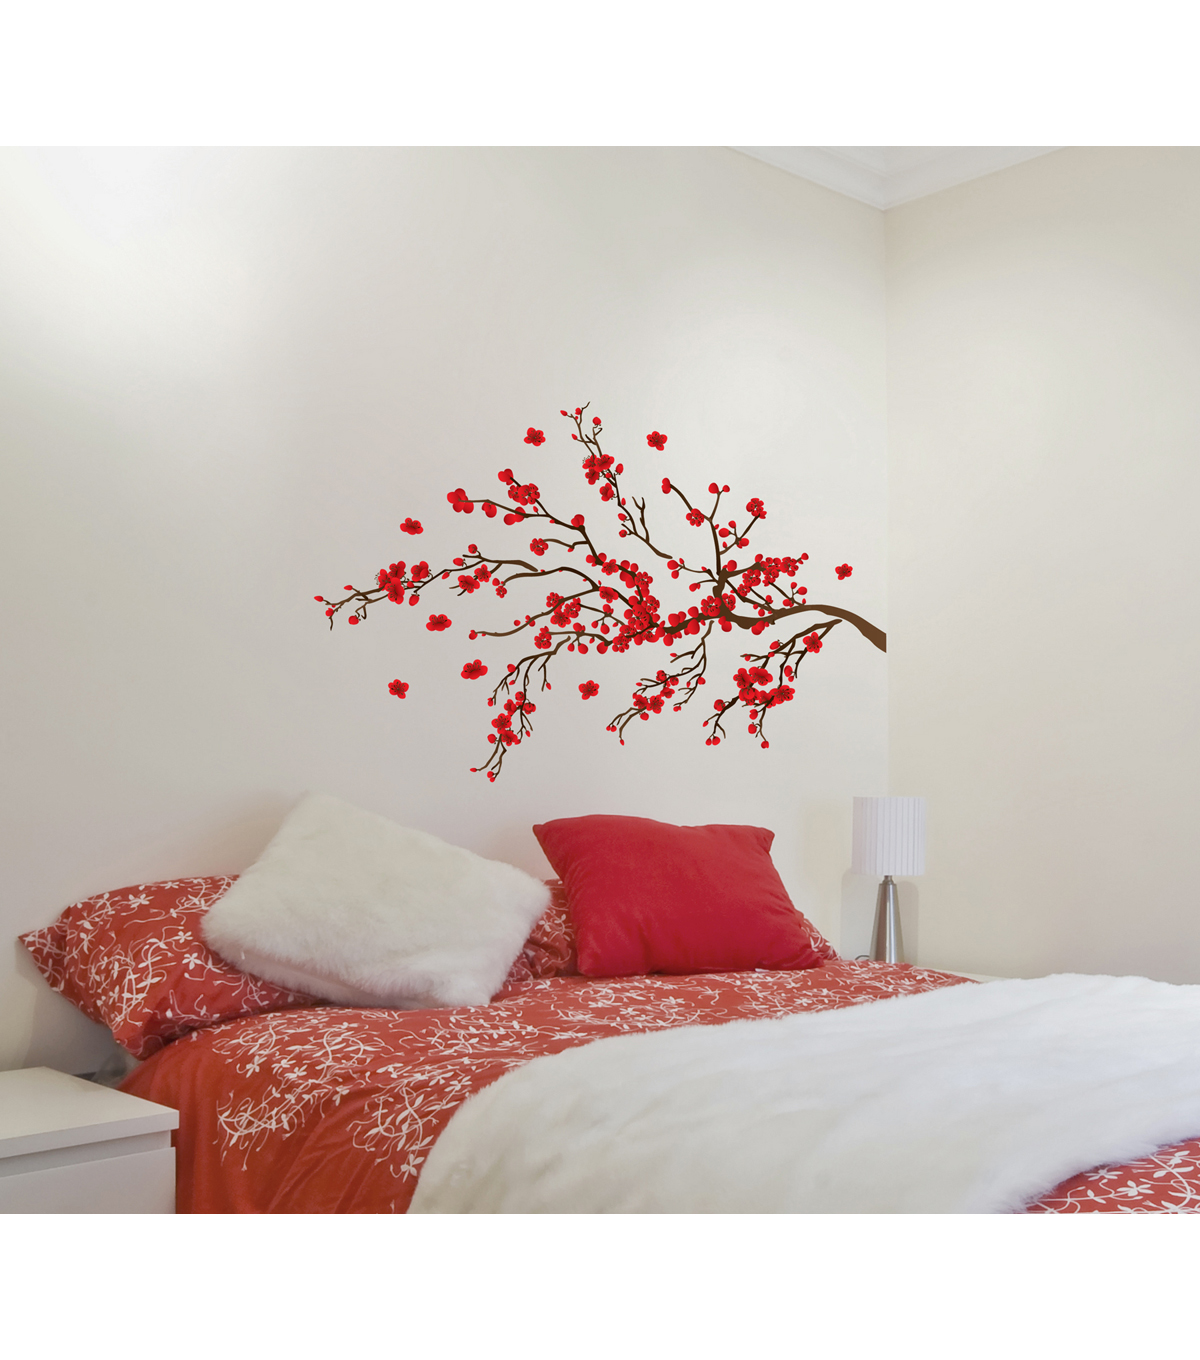 Home Decor Red Ramage Wall Decal, 14 Piece Set